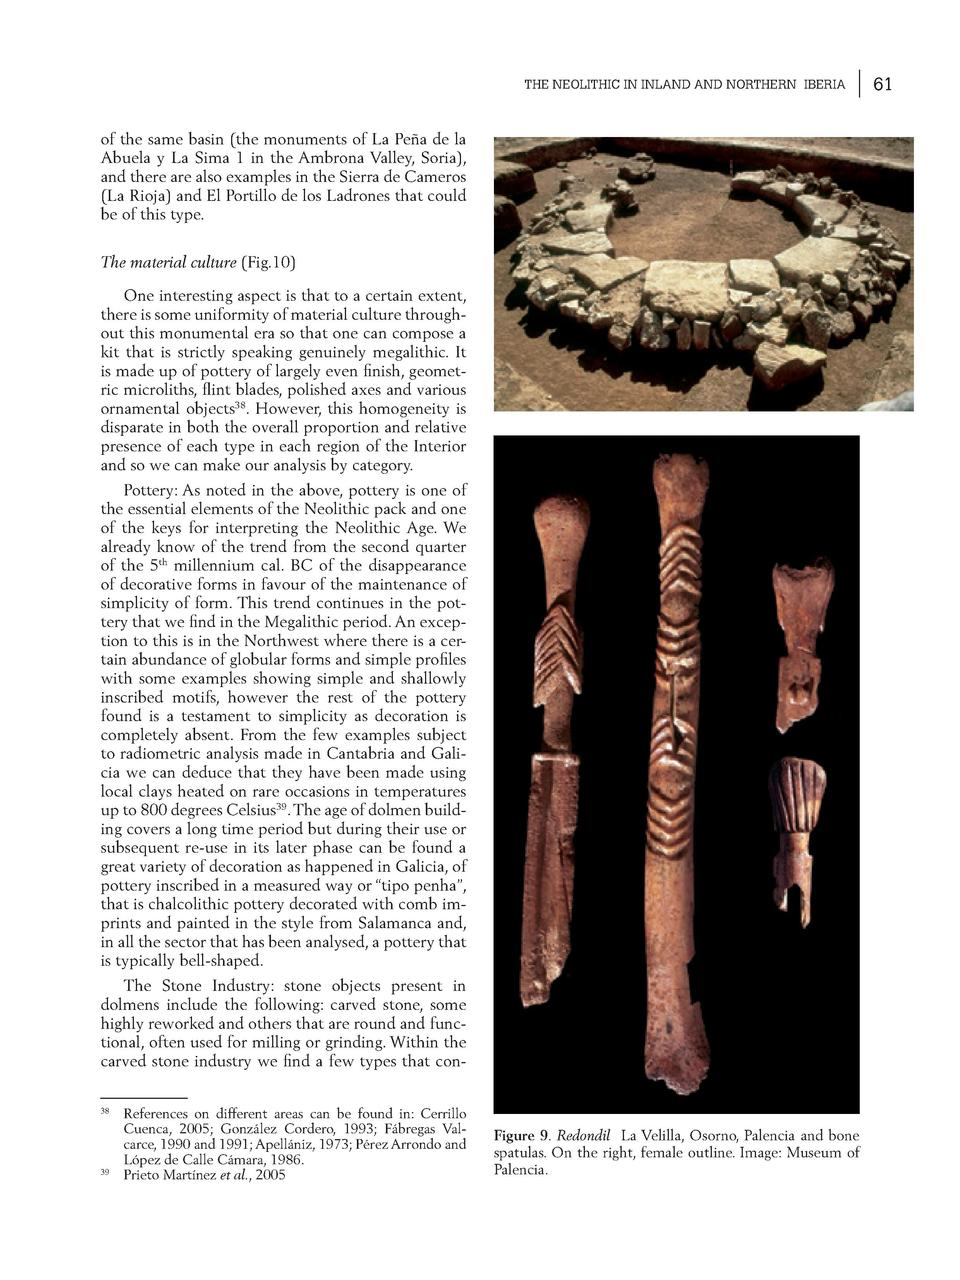 THE NEOLITHIC IN INLAND AND NORTHERN IBERIA  of the same basin  the monuments of La Pe  a de la Abuela y La Sima 1 in the ...